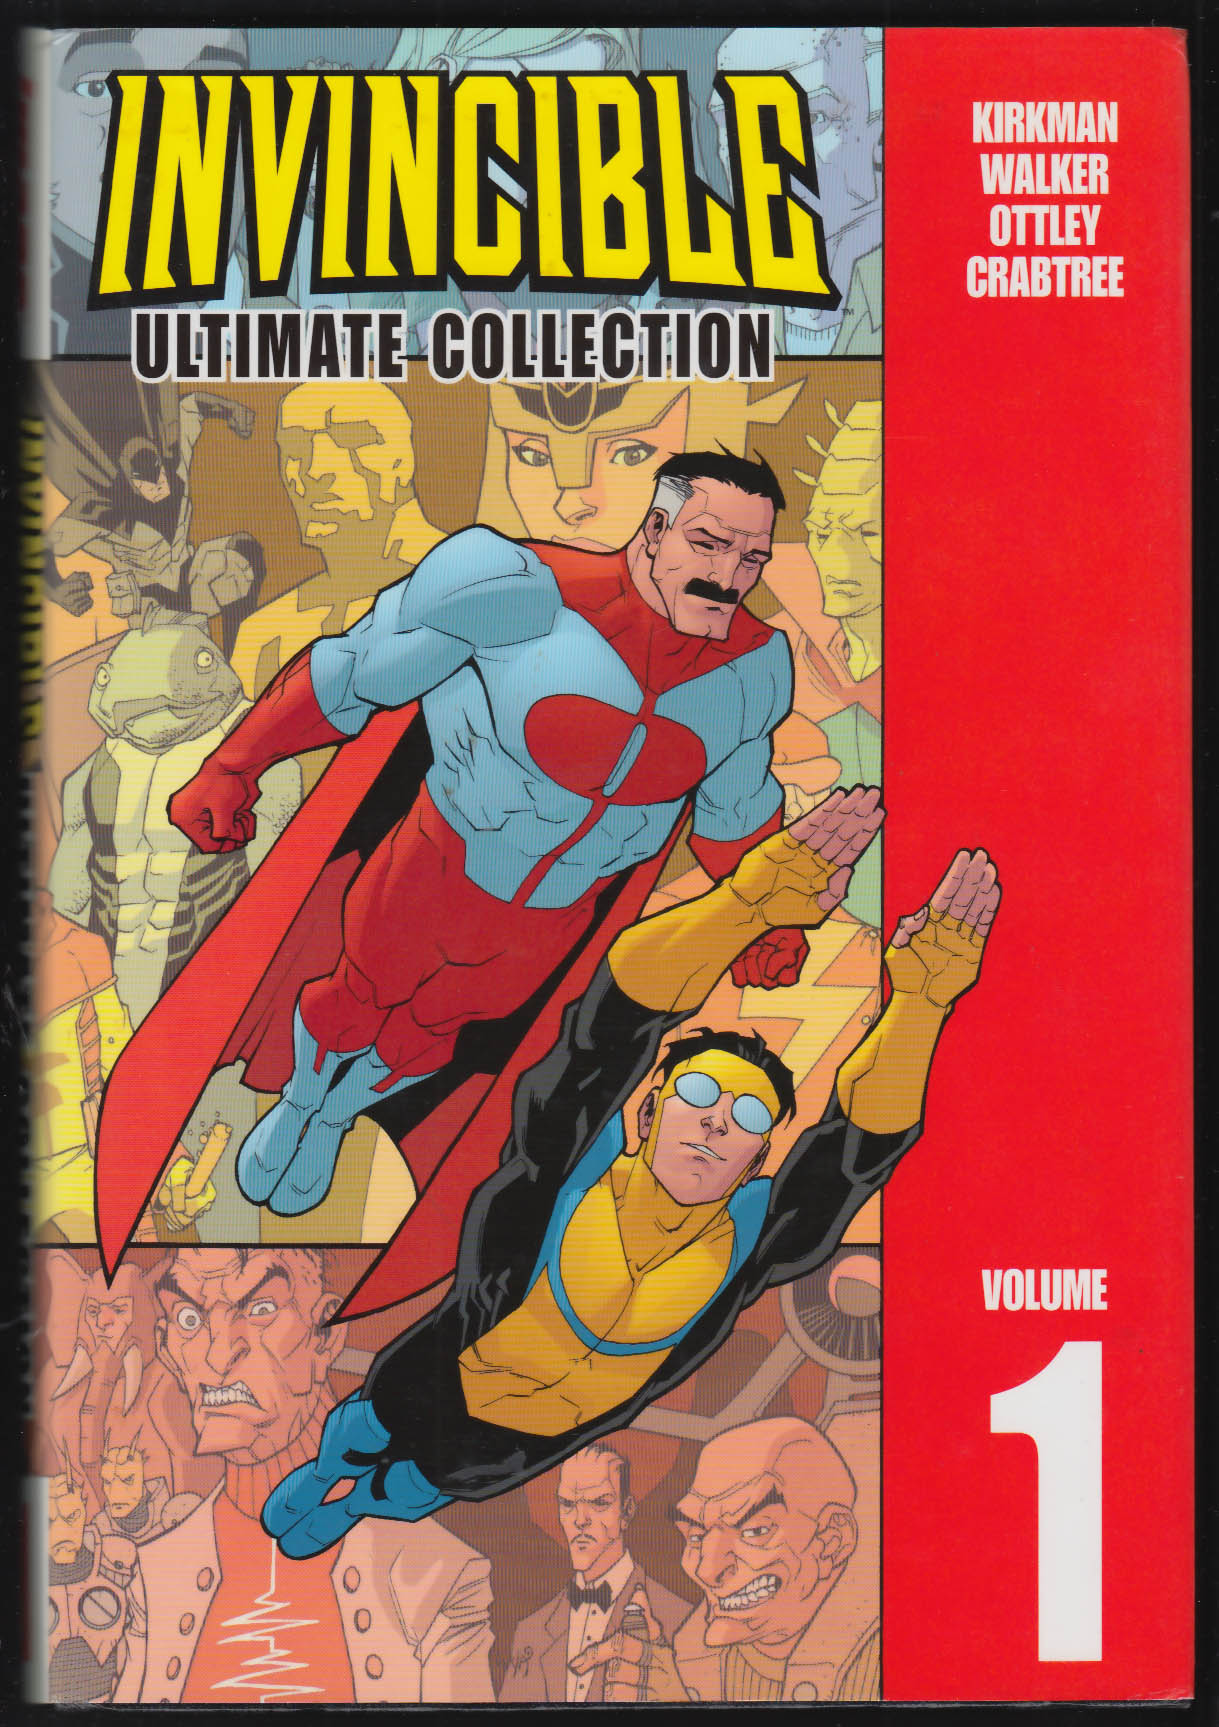 INVINCIBLE Ultimate Collection Volume 1 Image comic book 2005 2nd printing